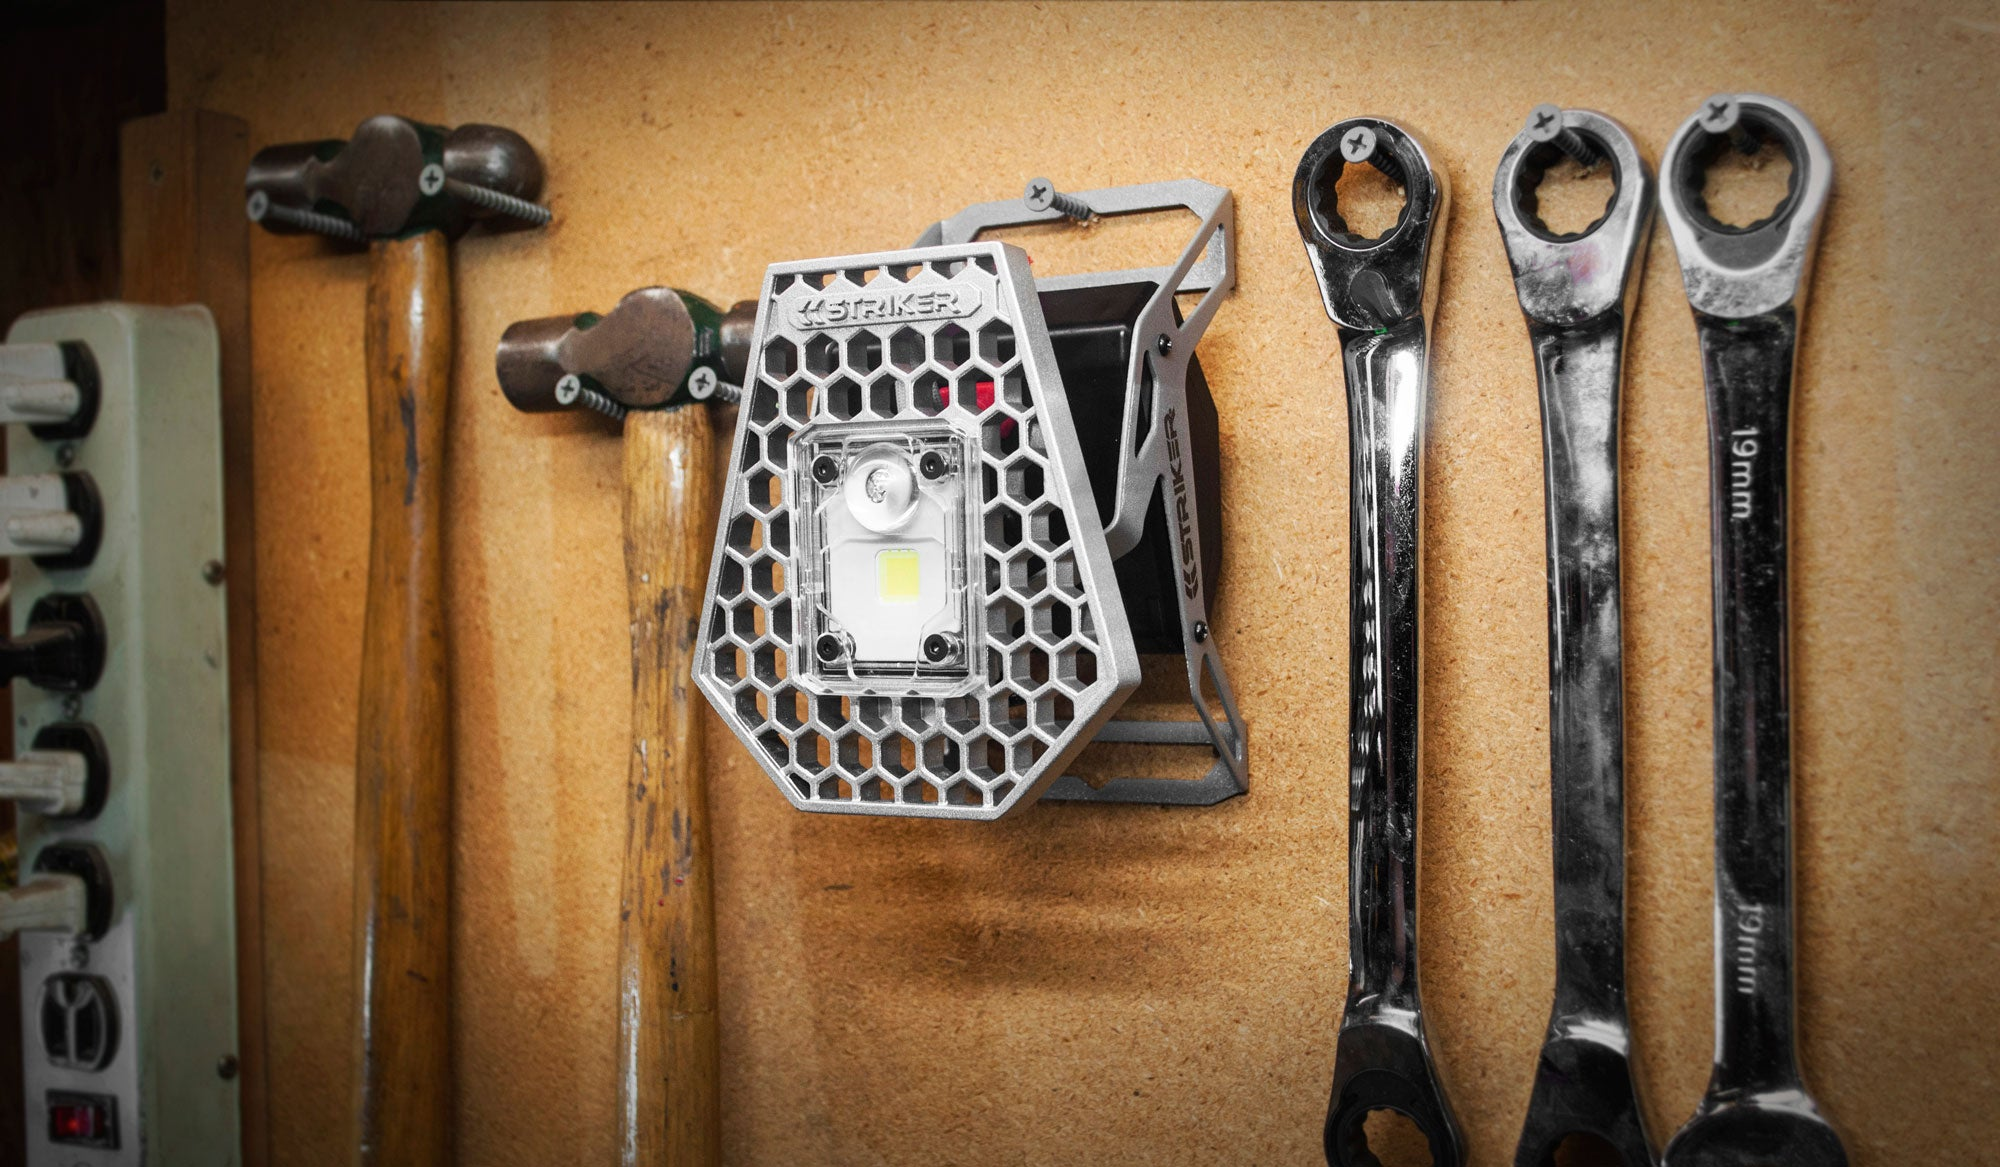 The Mobile Task Light hanging out in your workshop